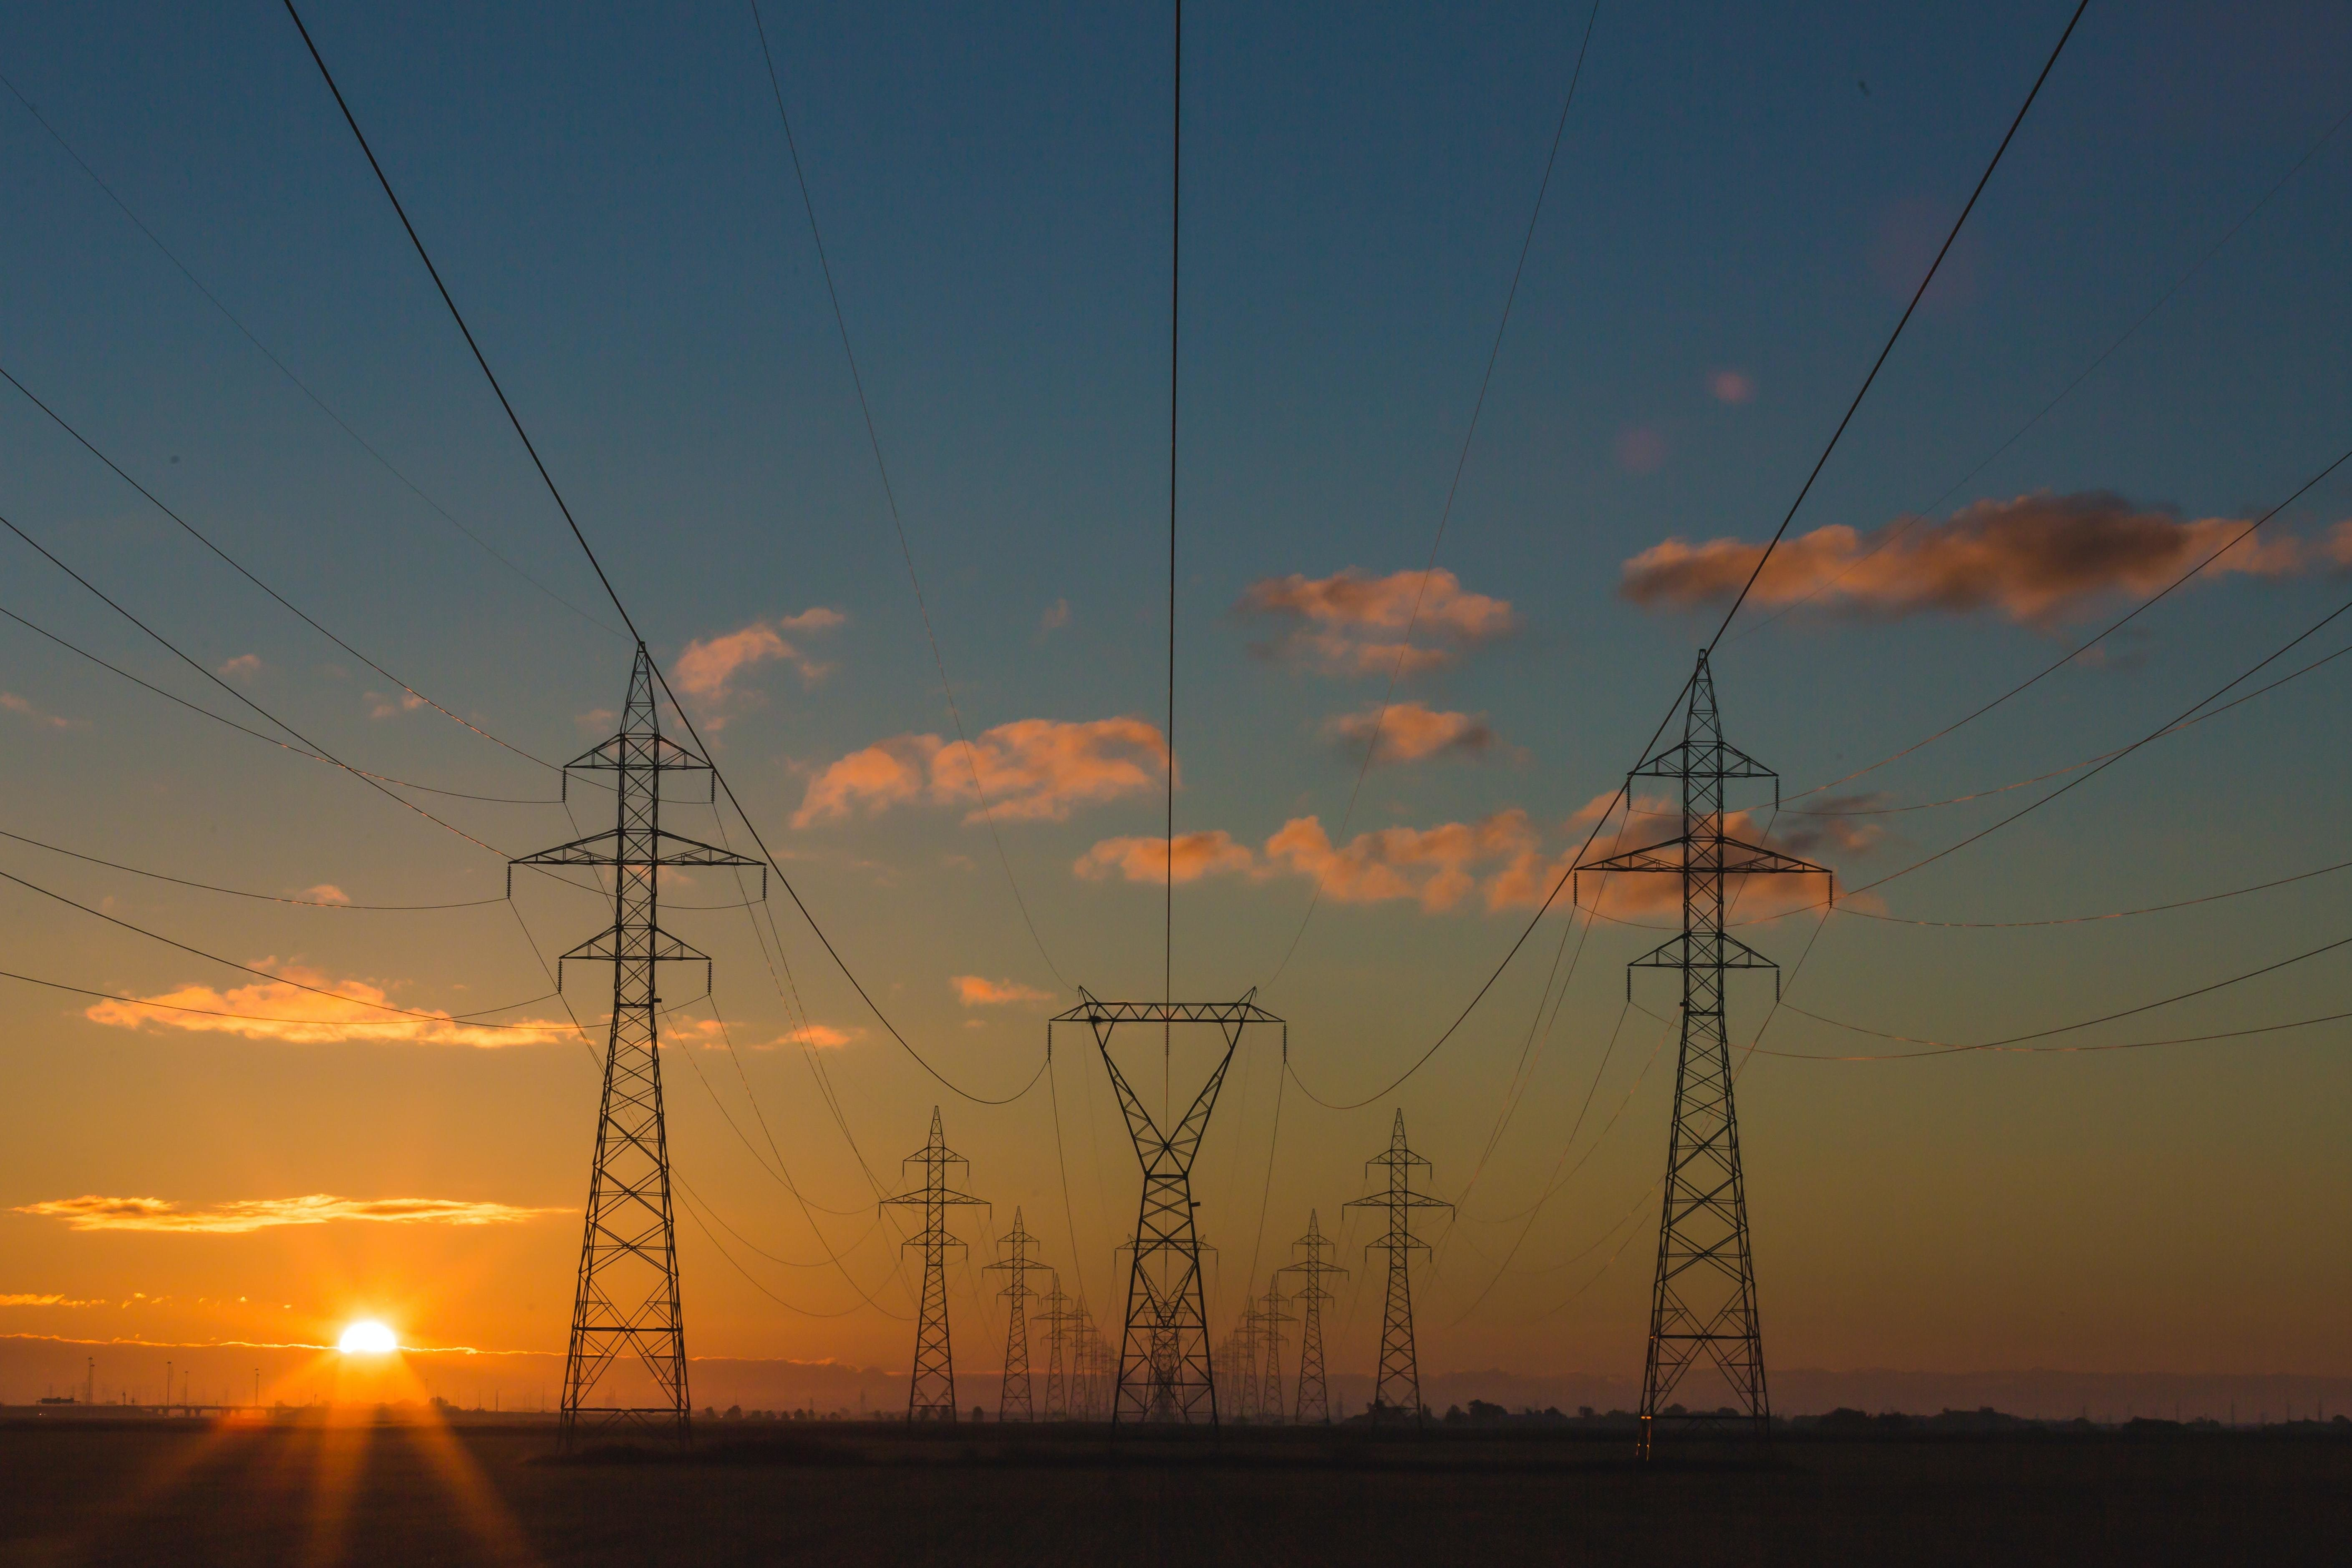 pylons infront of a sunset